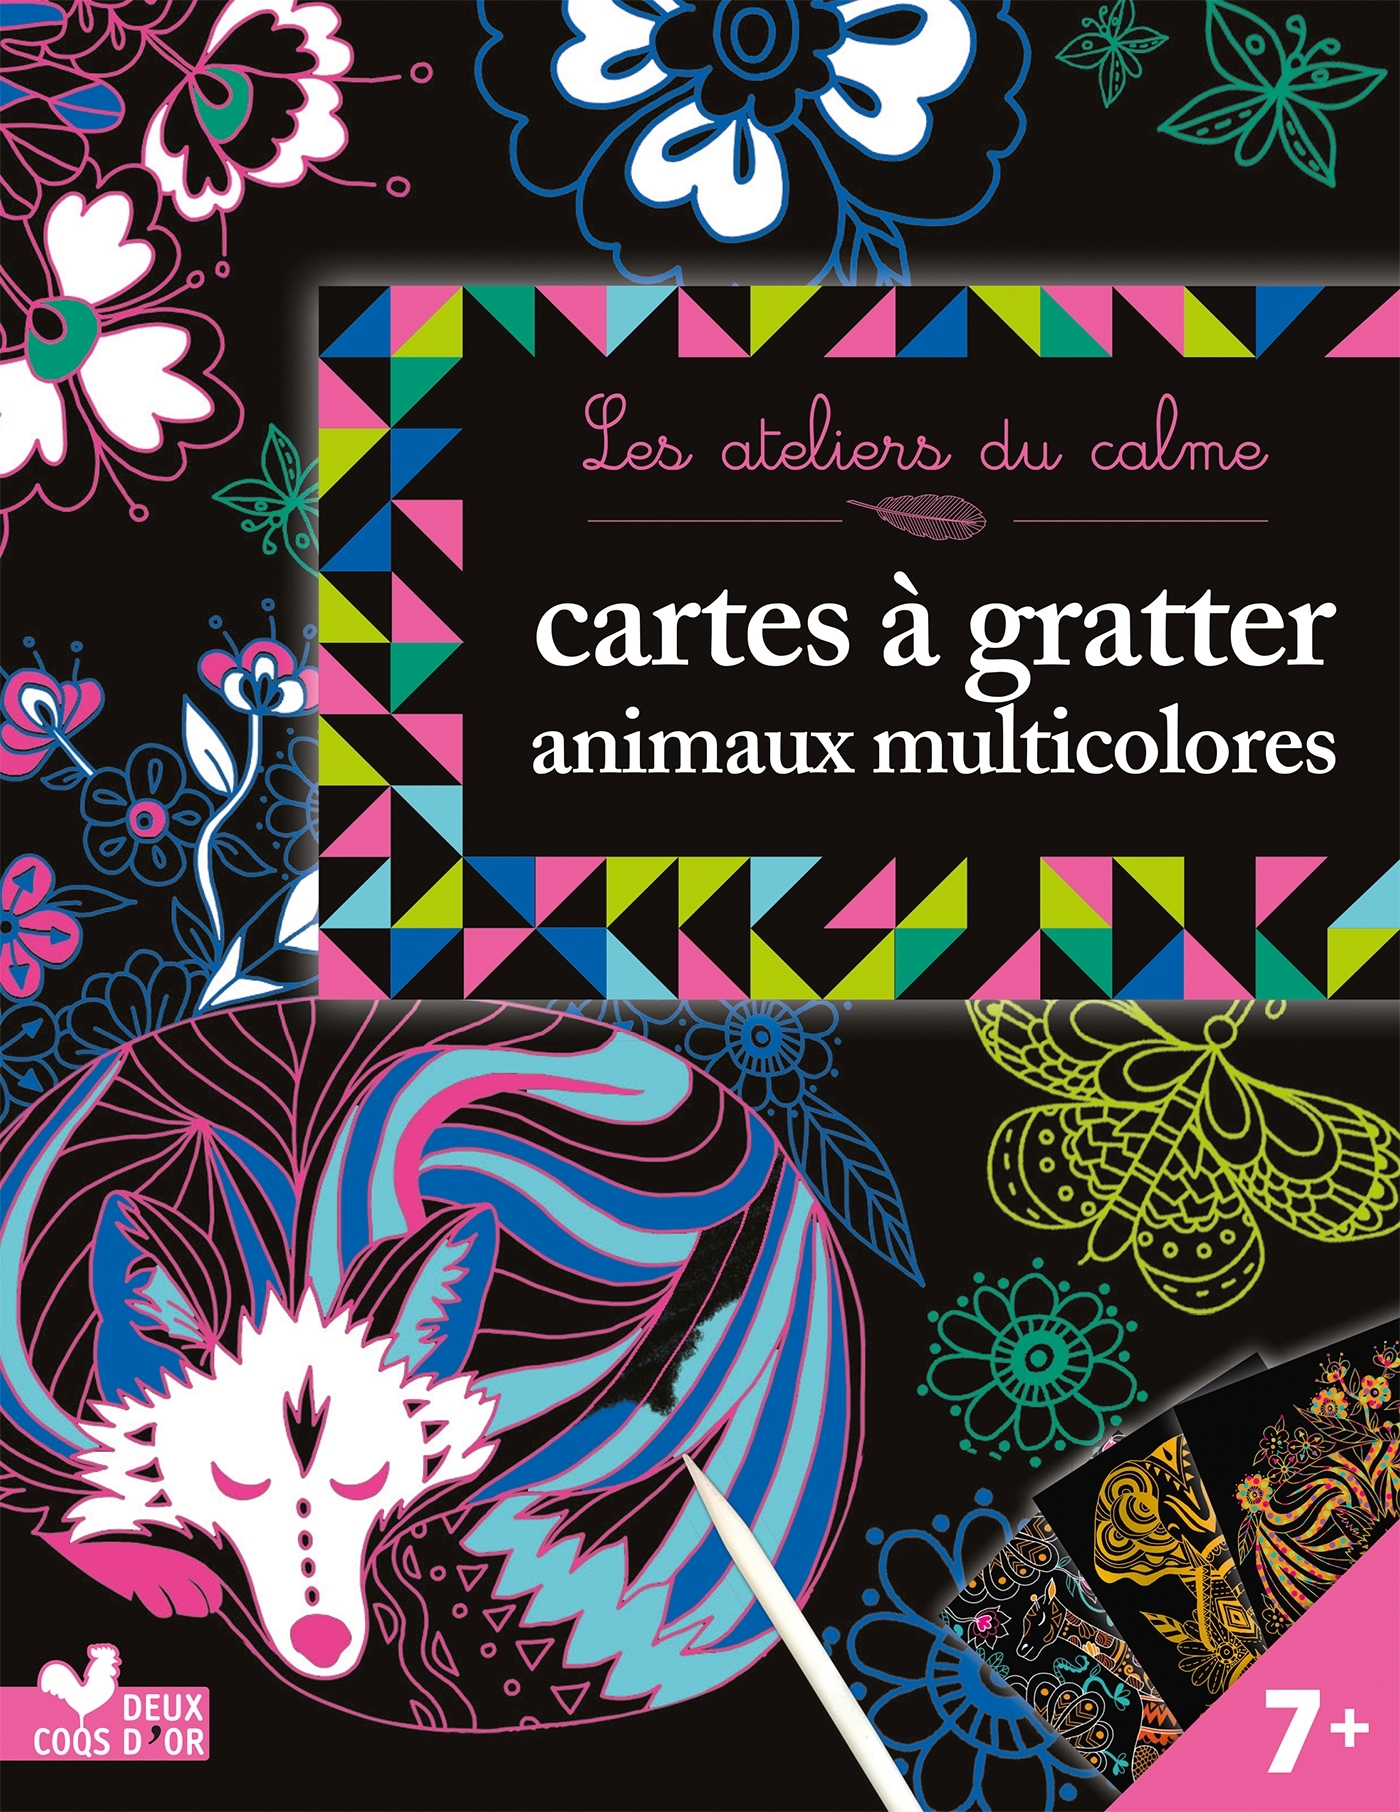 CARTES A GRATTER - ANIMAUX MULTICOLORES